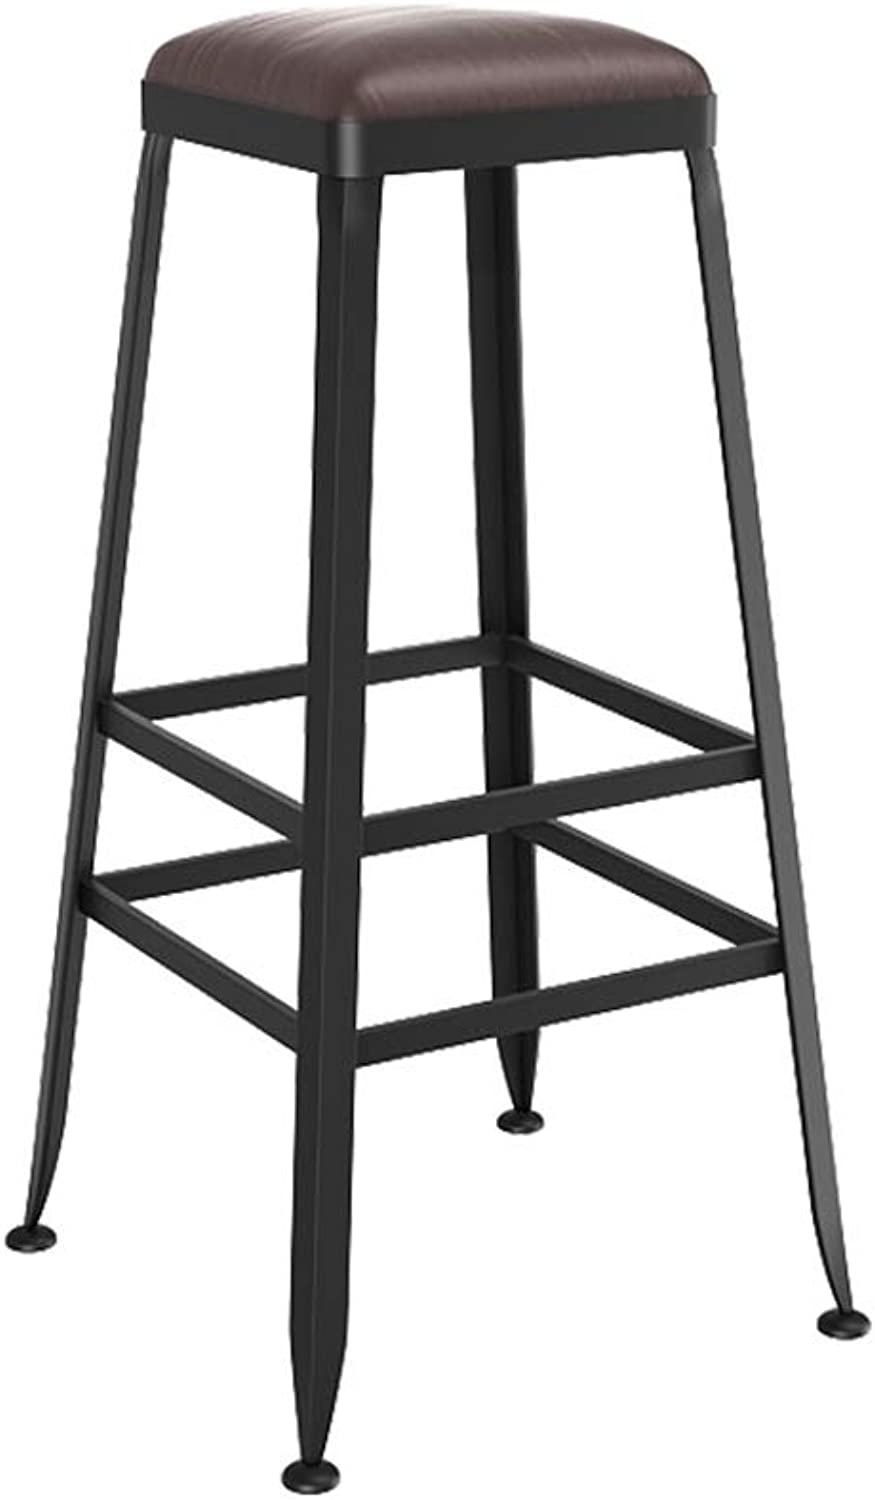 YJXJJD Vintage Style Wrought Iron Bar Stool Bar Stool Can Be Used for Kitchen Restaurant Counter Bar Chair (Size   70CM)